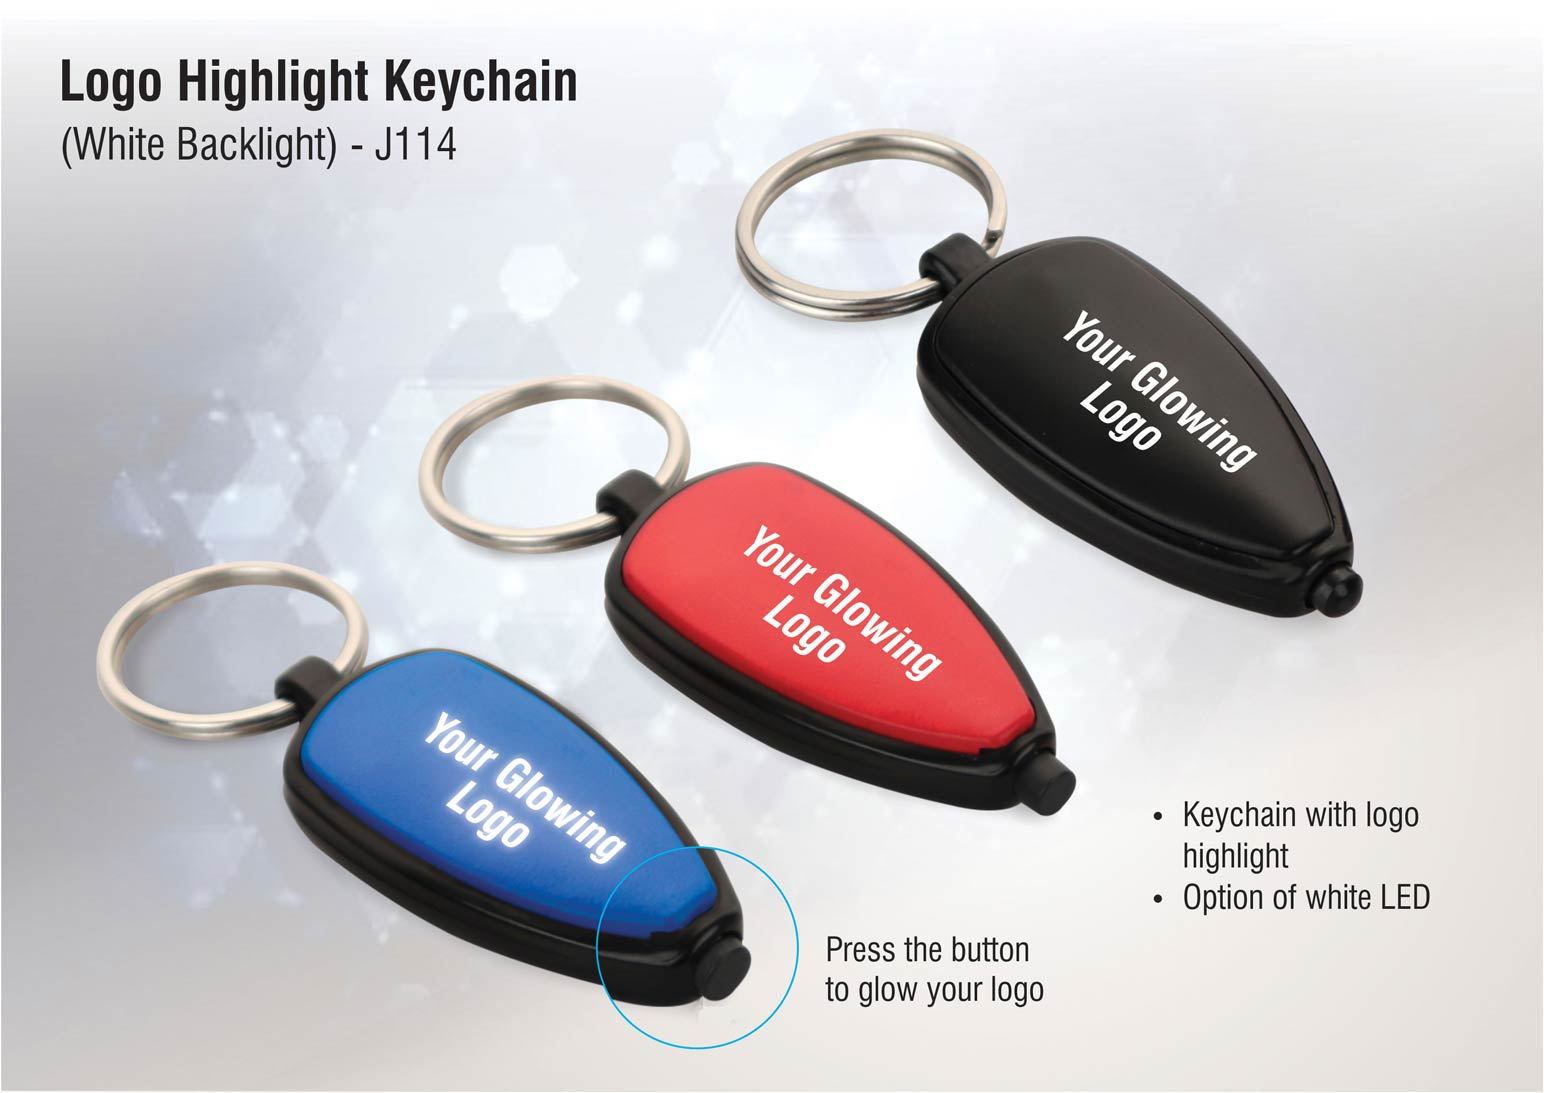 J114 - Logo highlight keychain (white backlight)